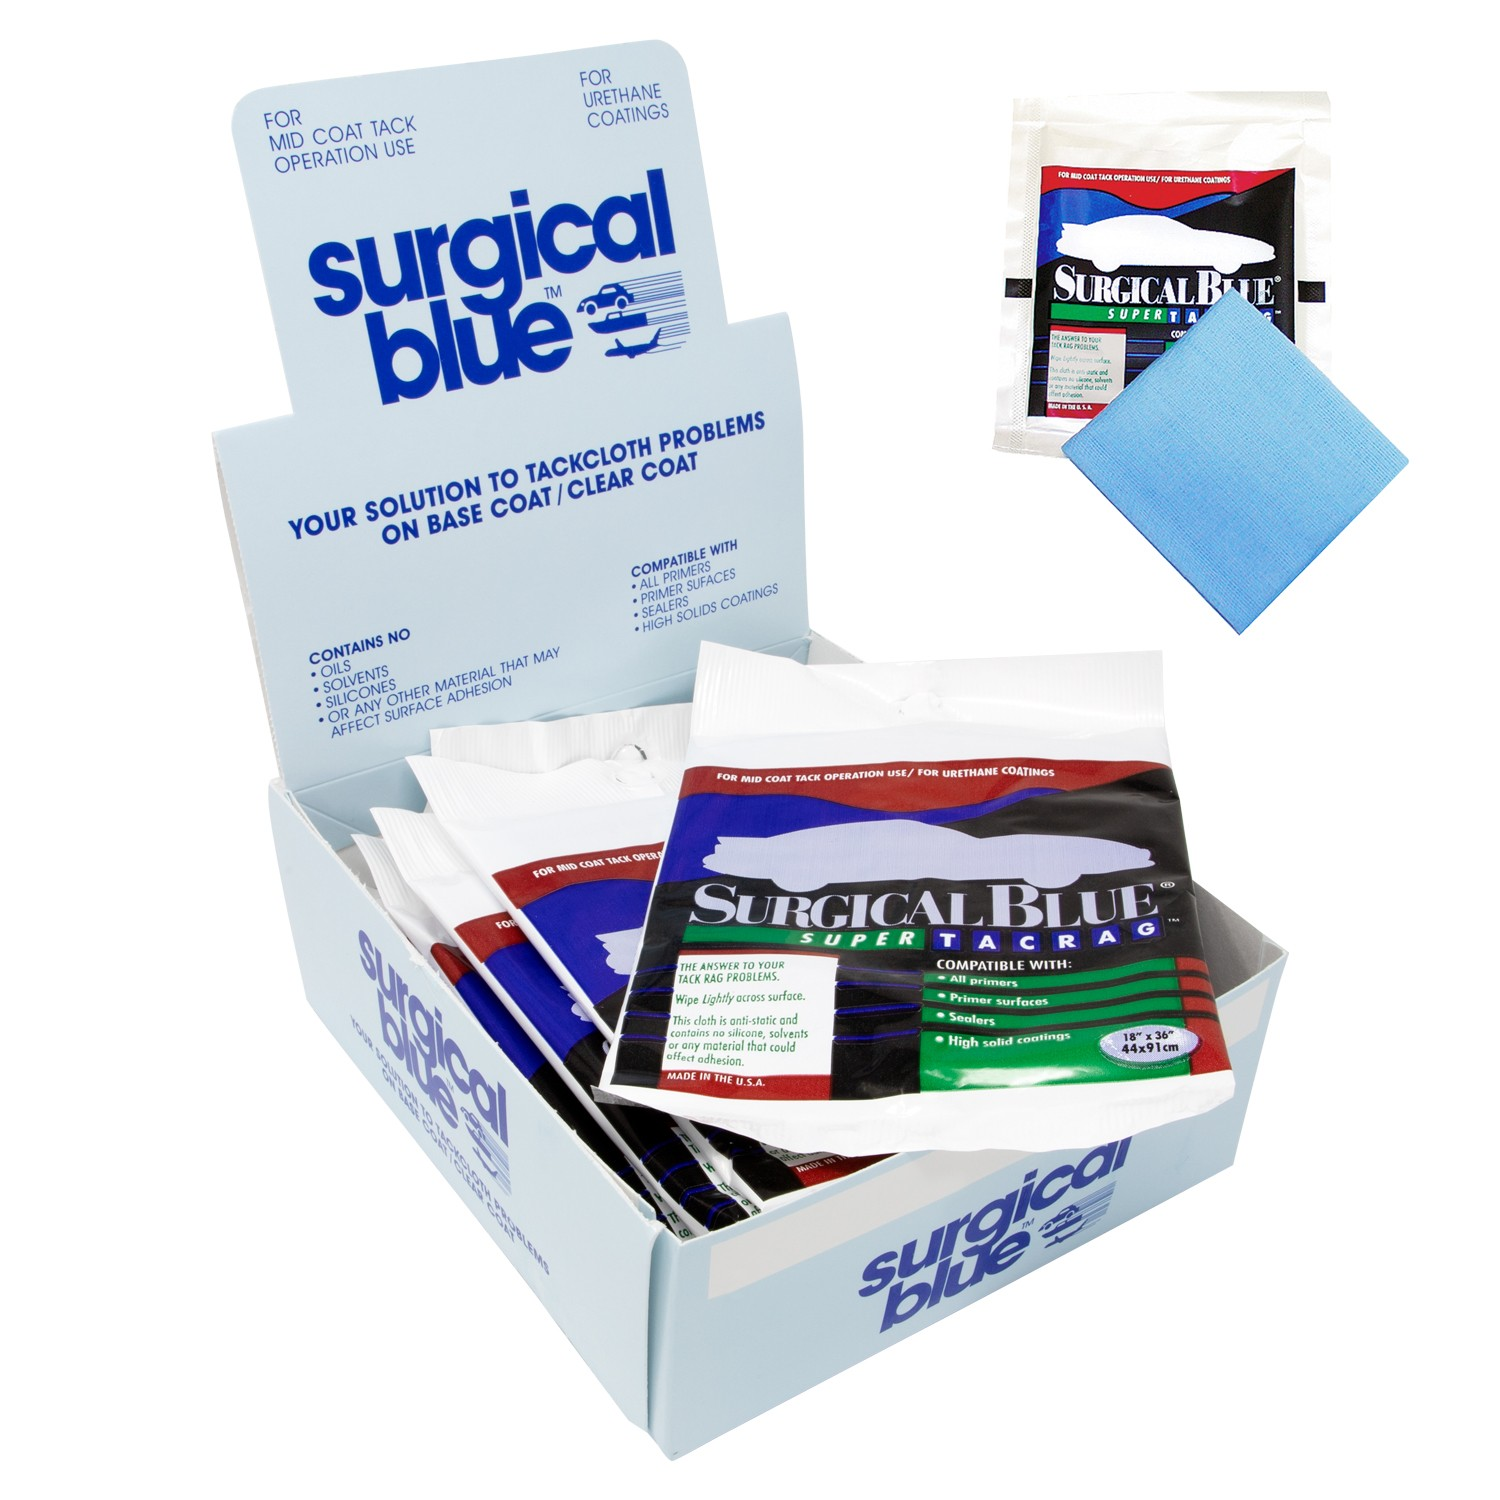 Surgical Blue Tack Rags - 1box (12pc)